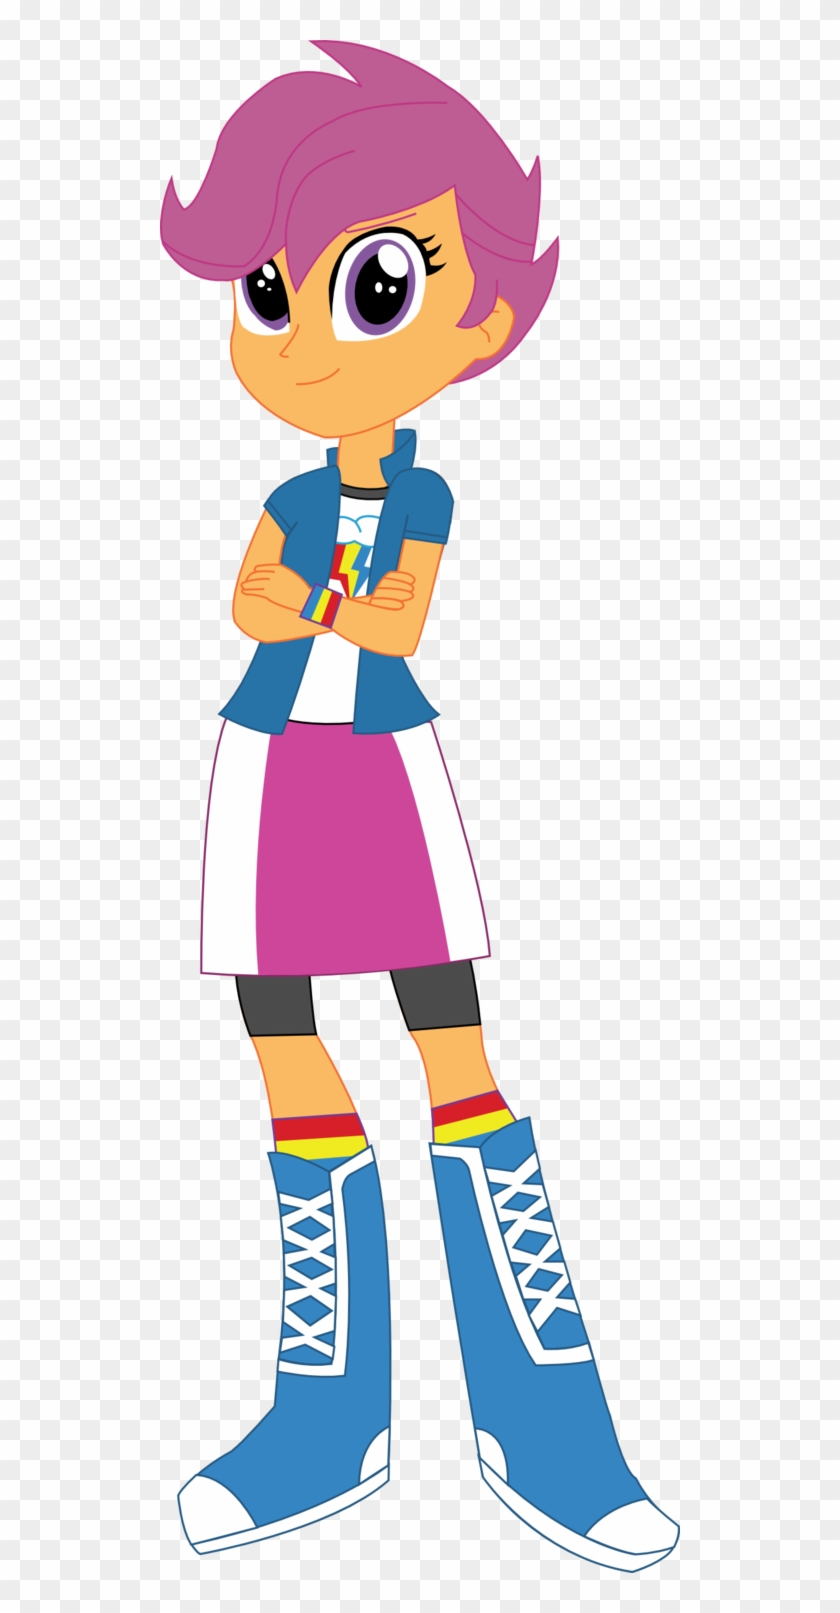 Equestria Girls Scootaloo By Sketchmcreations Rainbow Dash Equestria Girls Clothes Free Transparent Png Clipart Images Download The most common mlp scootaloo material is glass. rainbow dash equestria girls clothes